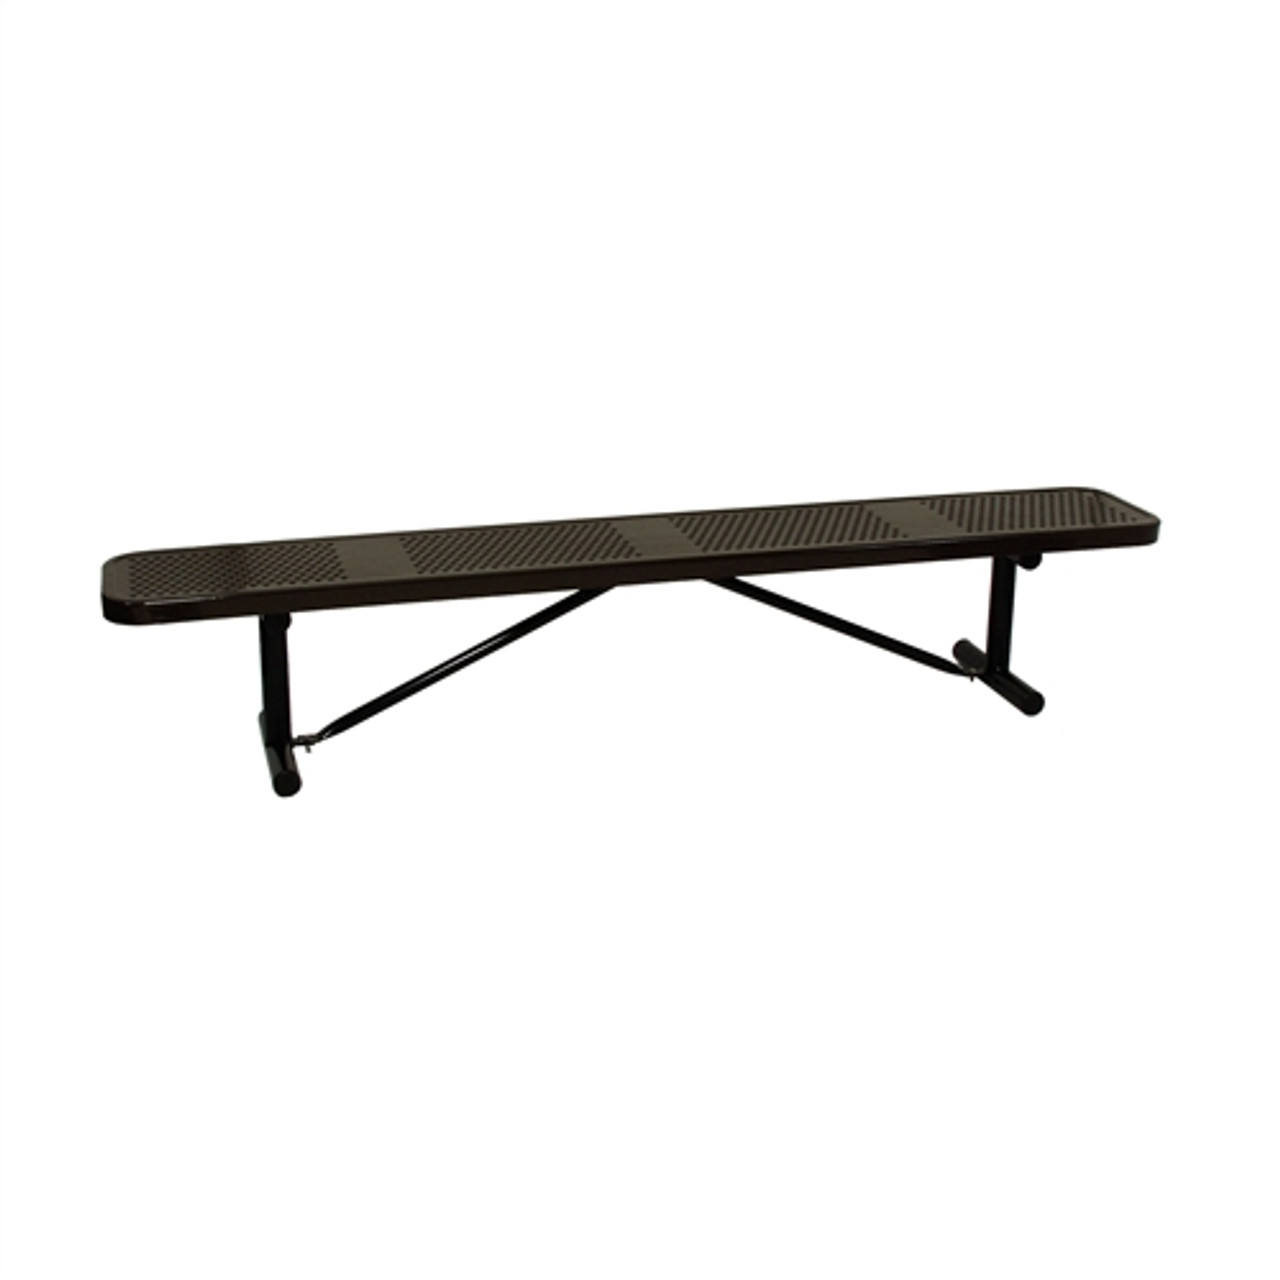 black metal sports bench without a back